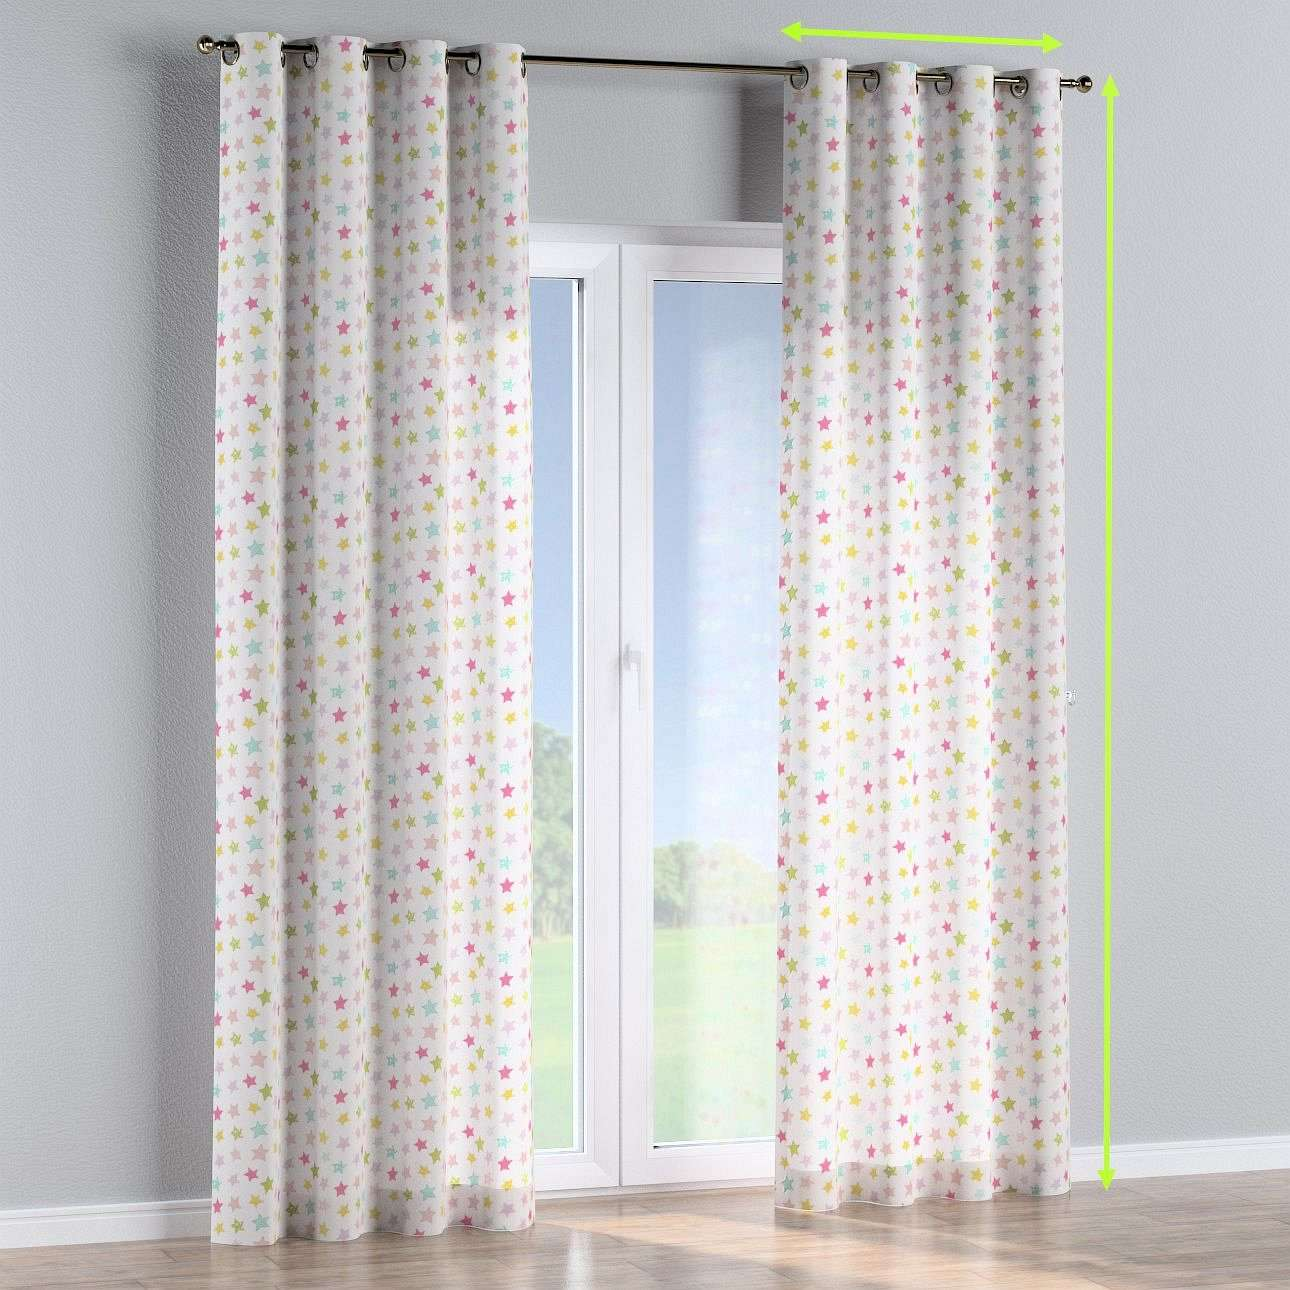 Eyelet lined curtains in collection Little World, fabric: 141-52